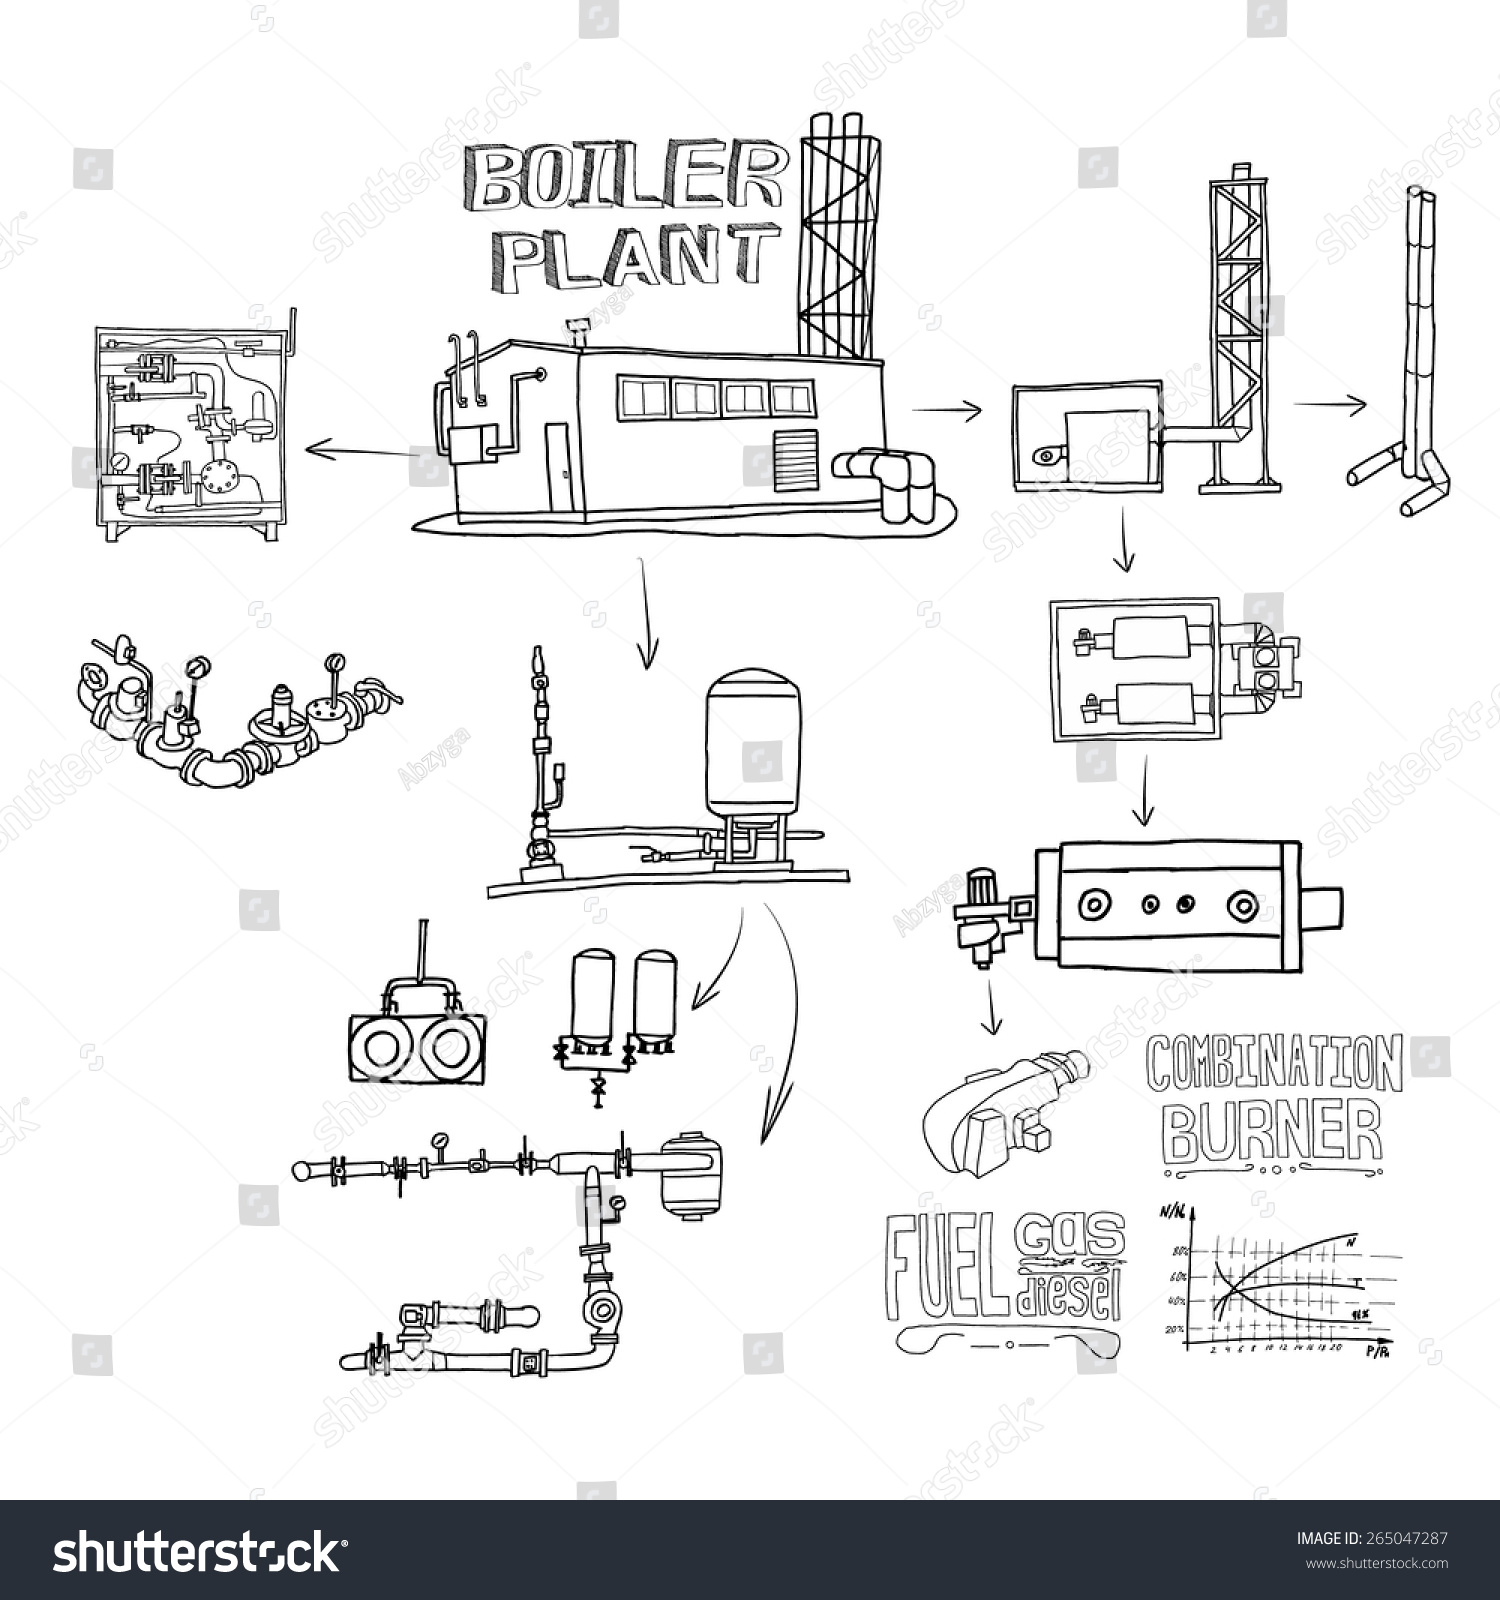 Boiler Room Equipment Engineering Systems Sketch Stock Vector Gas Schematic File Heat